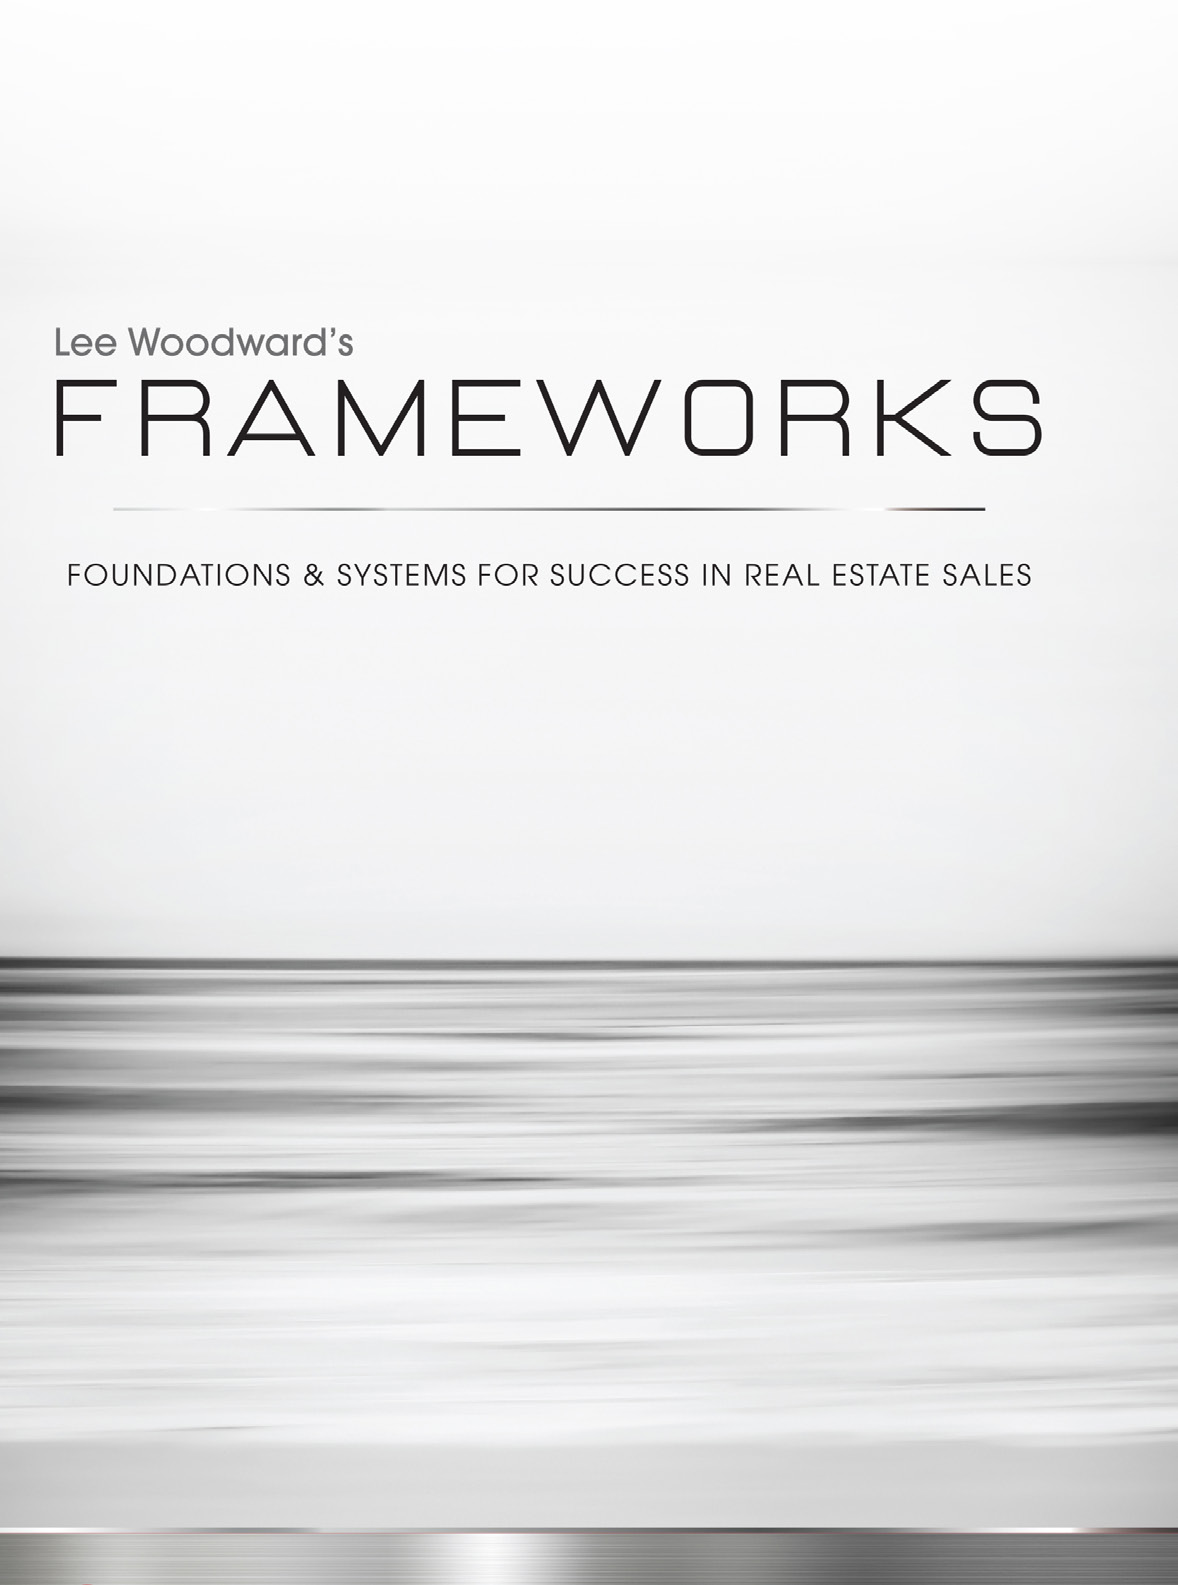 Frameworks – foundations & systems for success in real estate sales by Lee Woodward